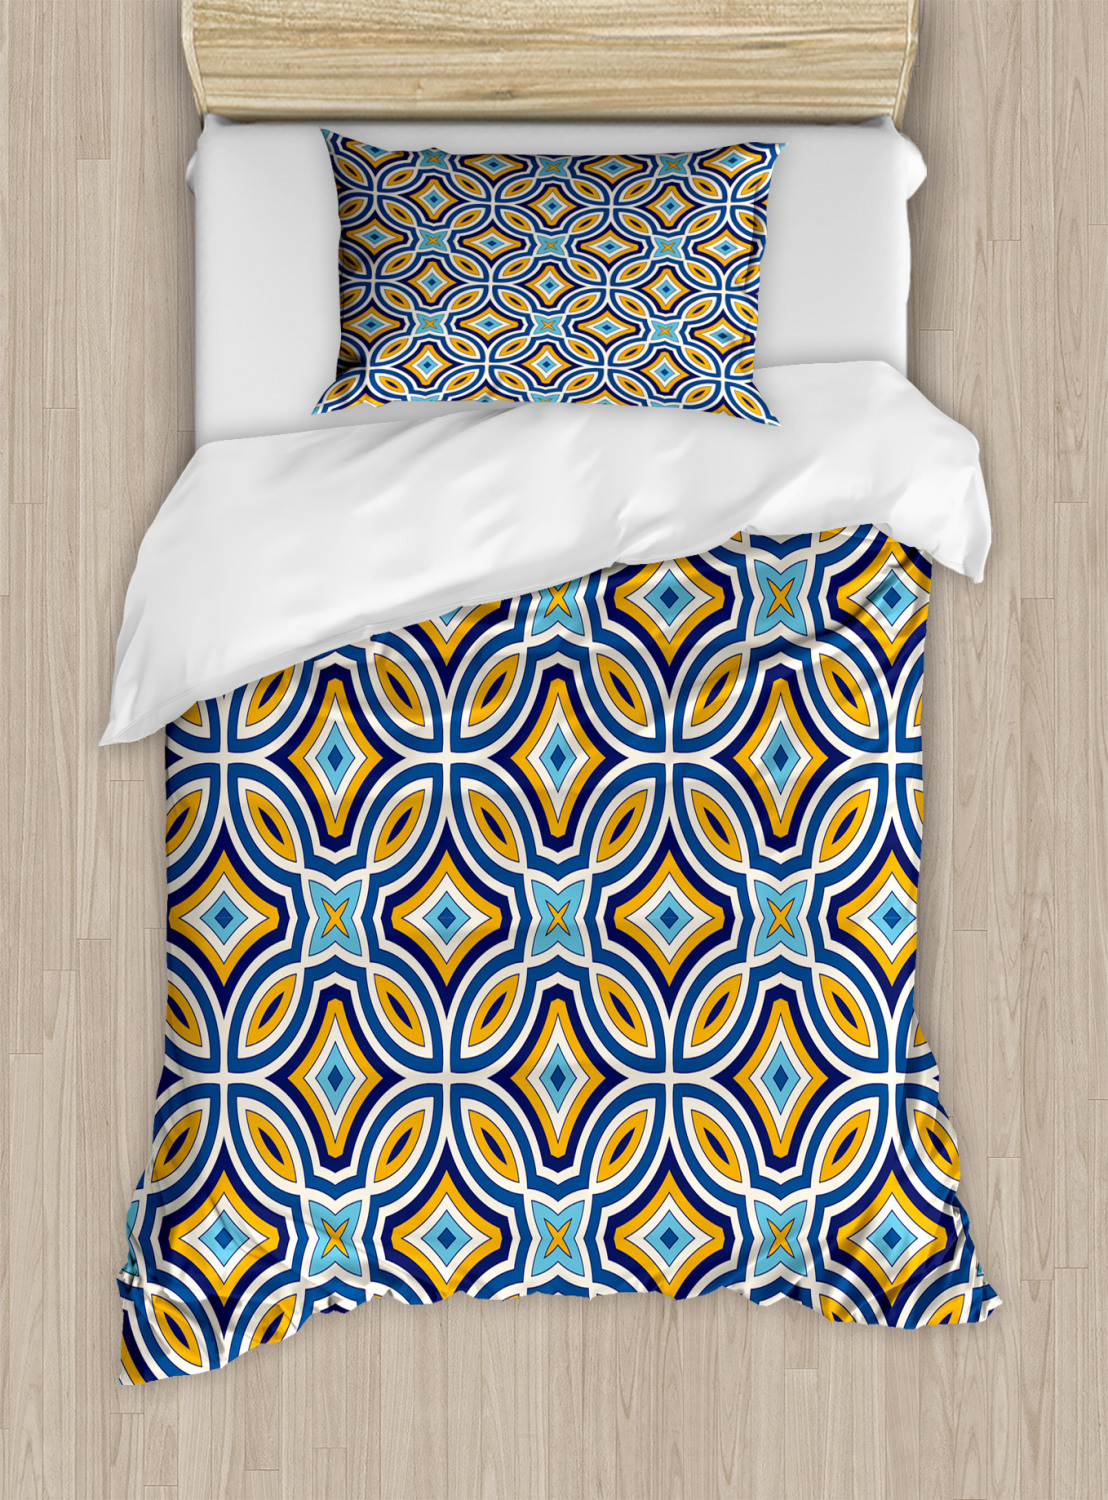 Timeless-Oriental-Duvet-Cover-Set-Twin-Queen-King-Sizes-with-Pillow-Shams thumbnail 31